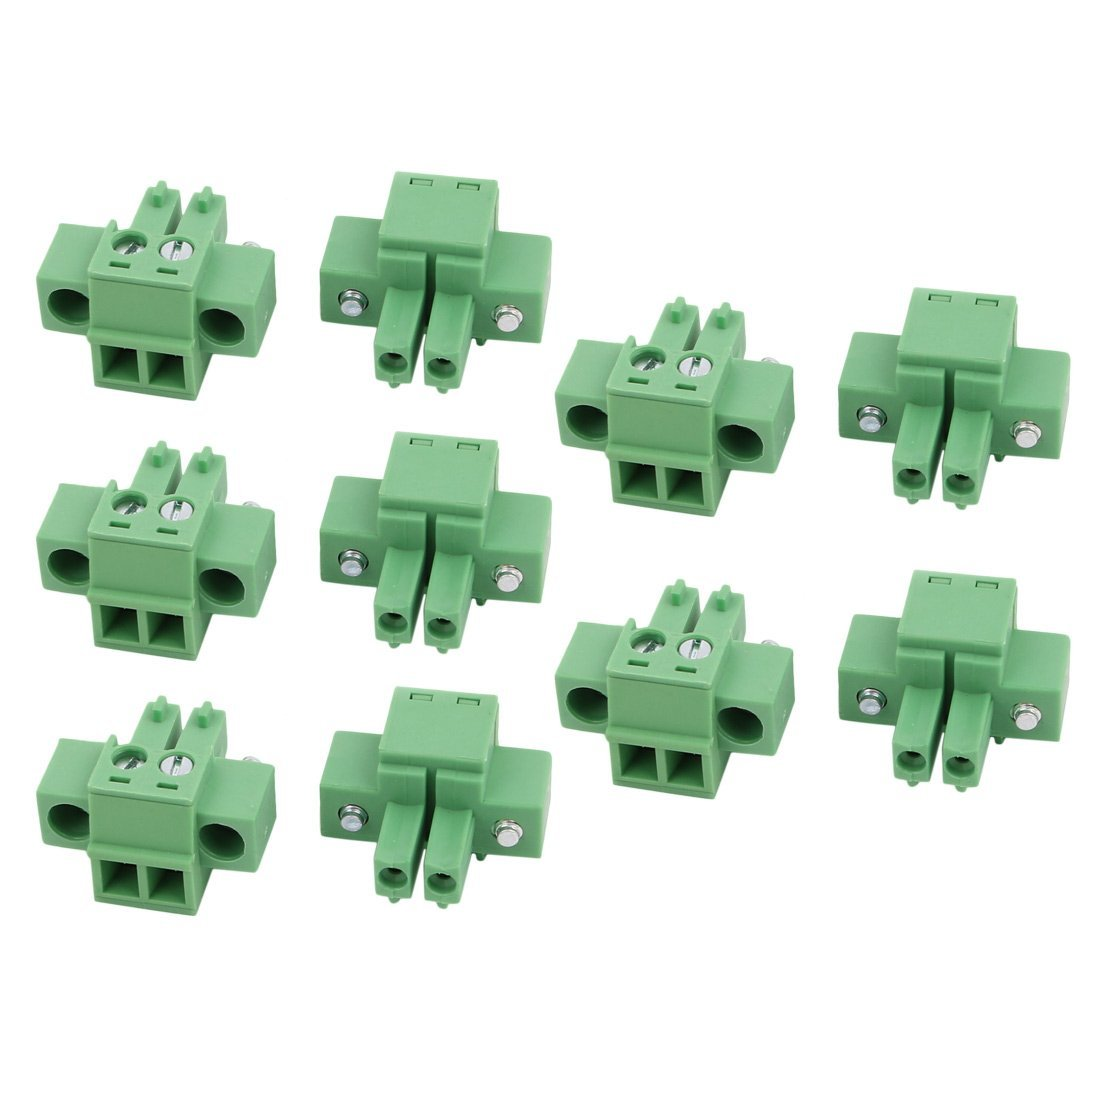 uxcell 10 Pcs AC 300V 8A 3.81mm Pitch 2P Terminal Block Wire Connector for PCB Mounting